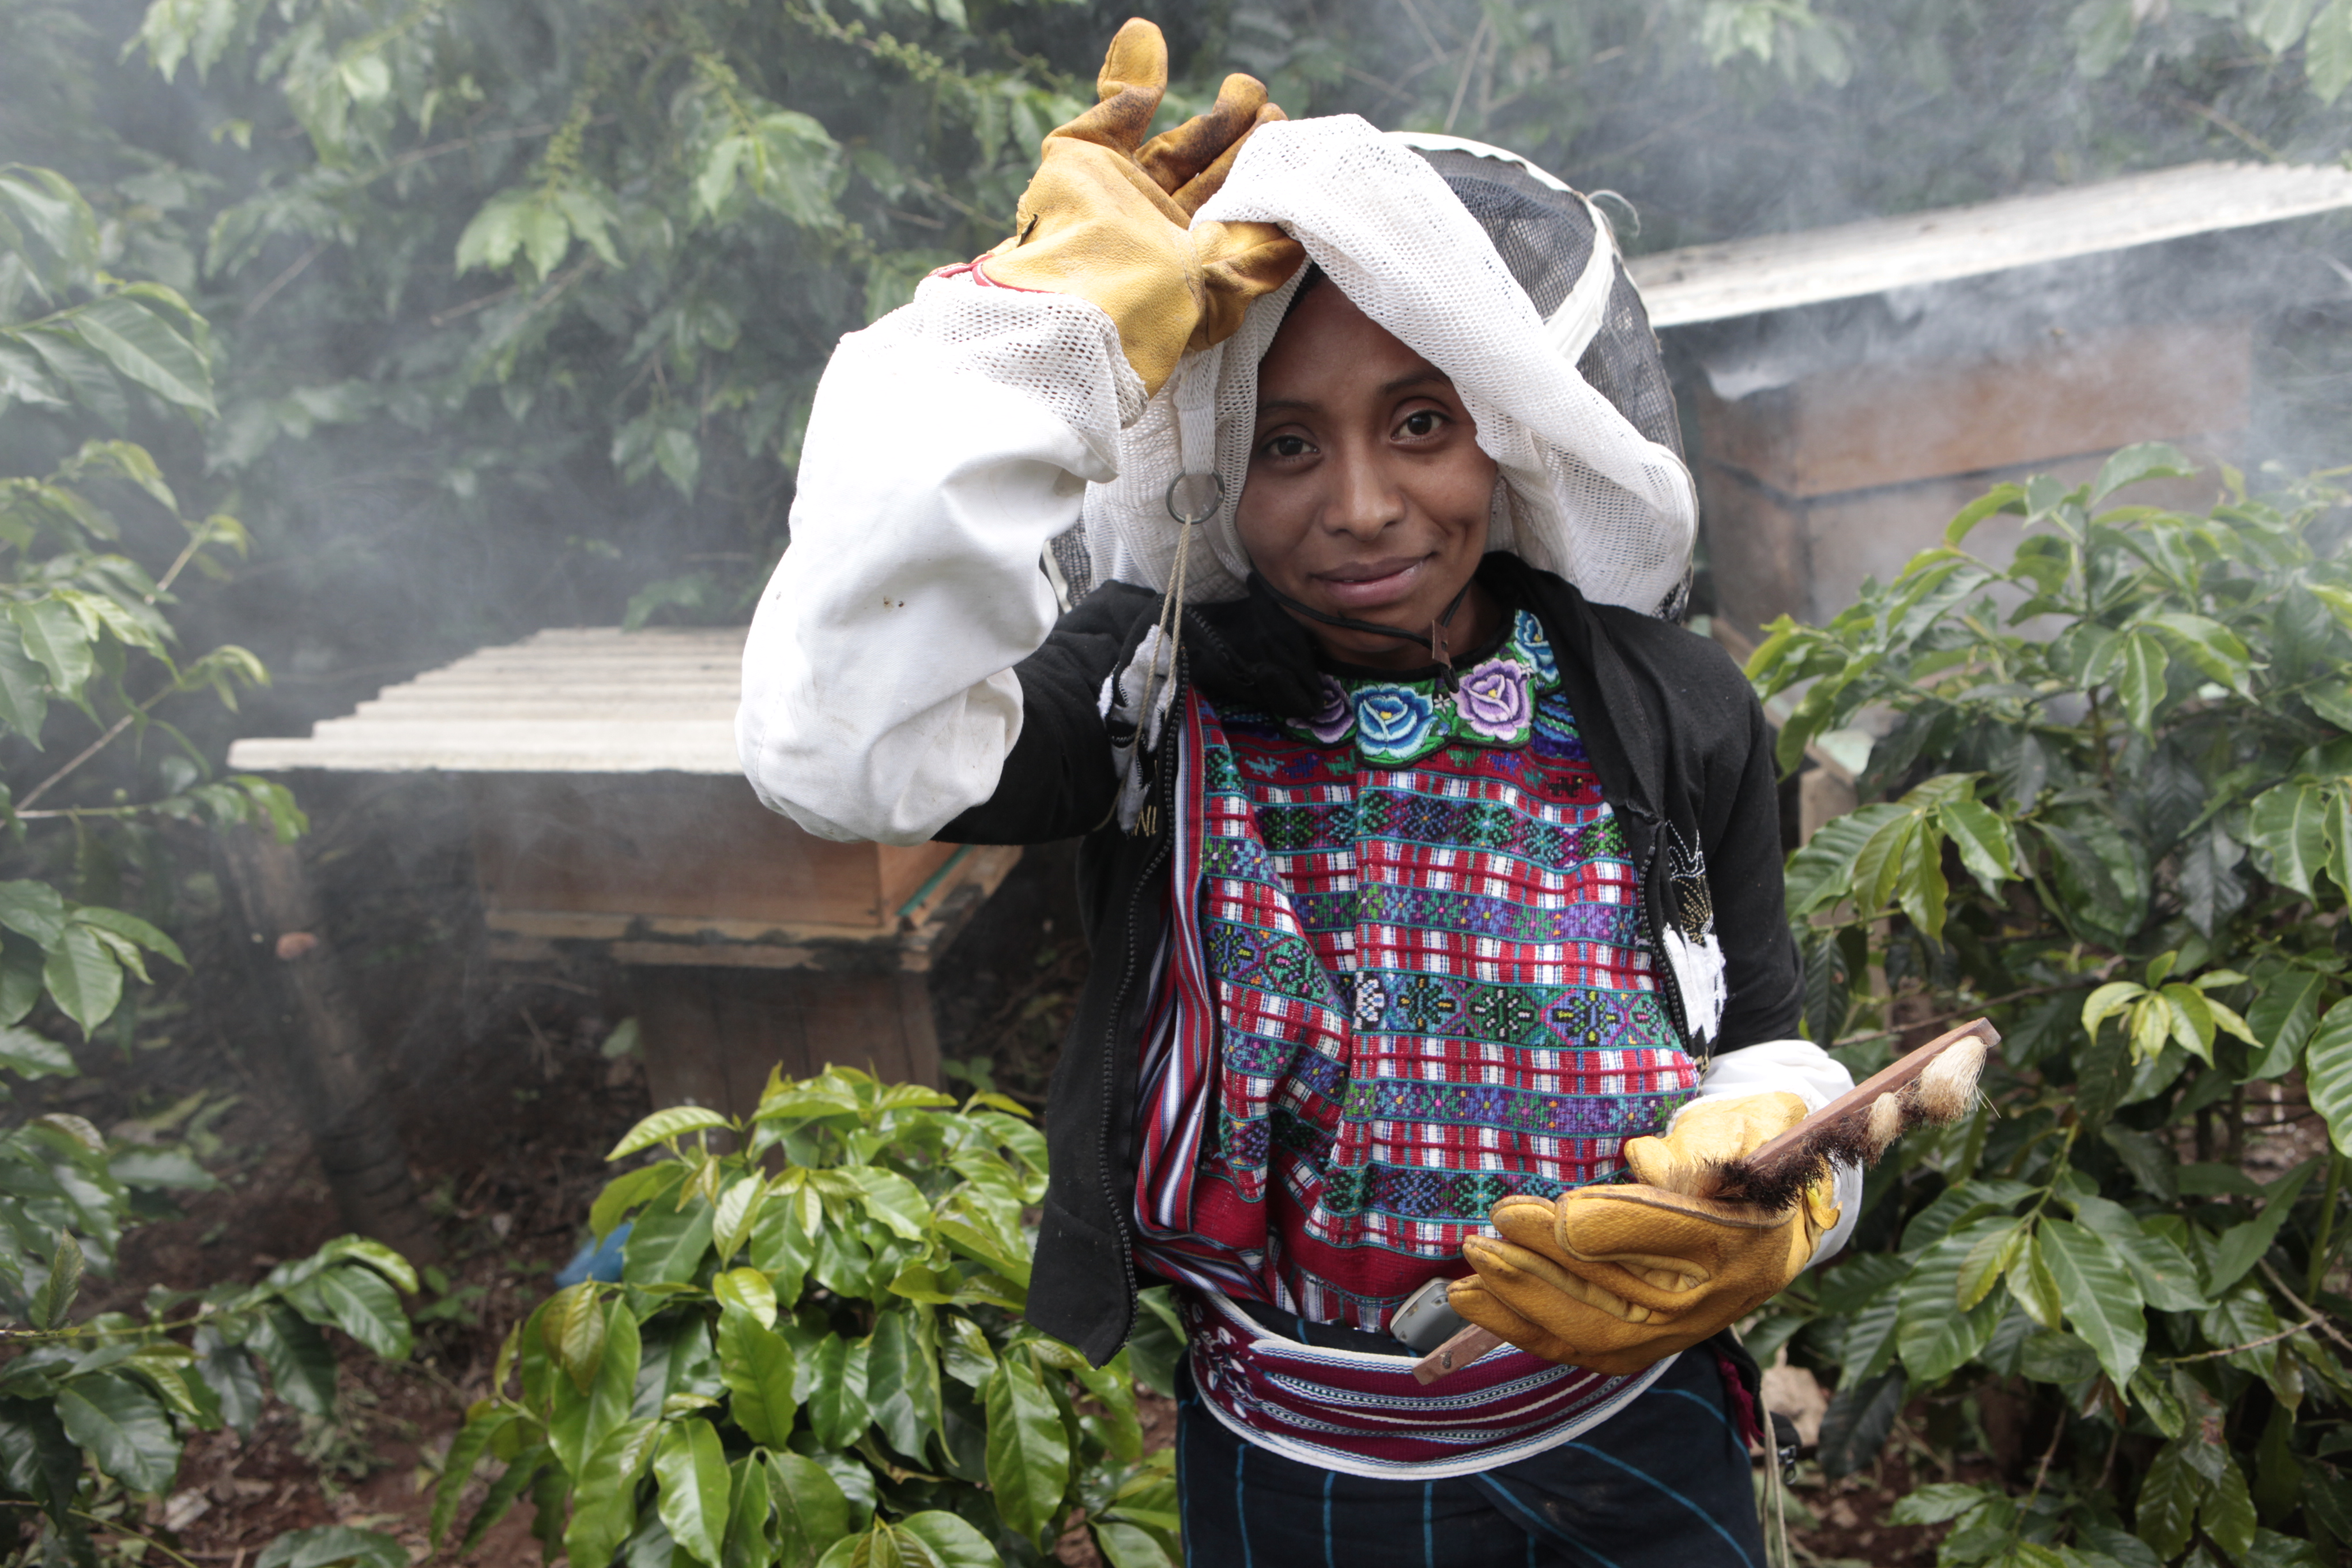 Improving Food Security and Nutrition of Coffee Farm Workers' Families (Project # 23-1327-60)